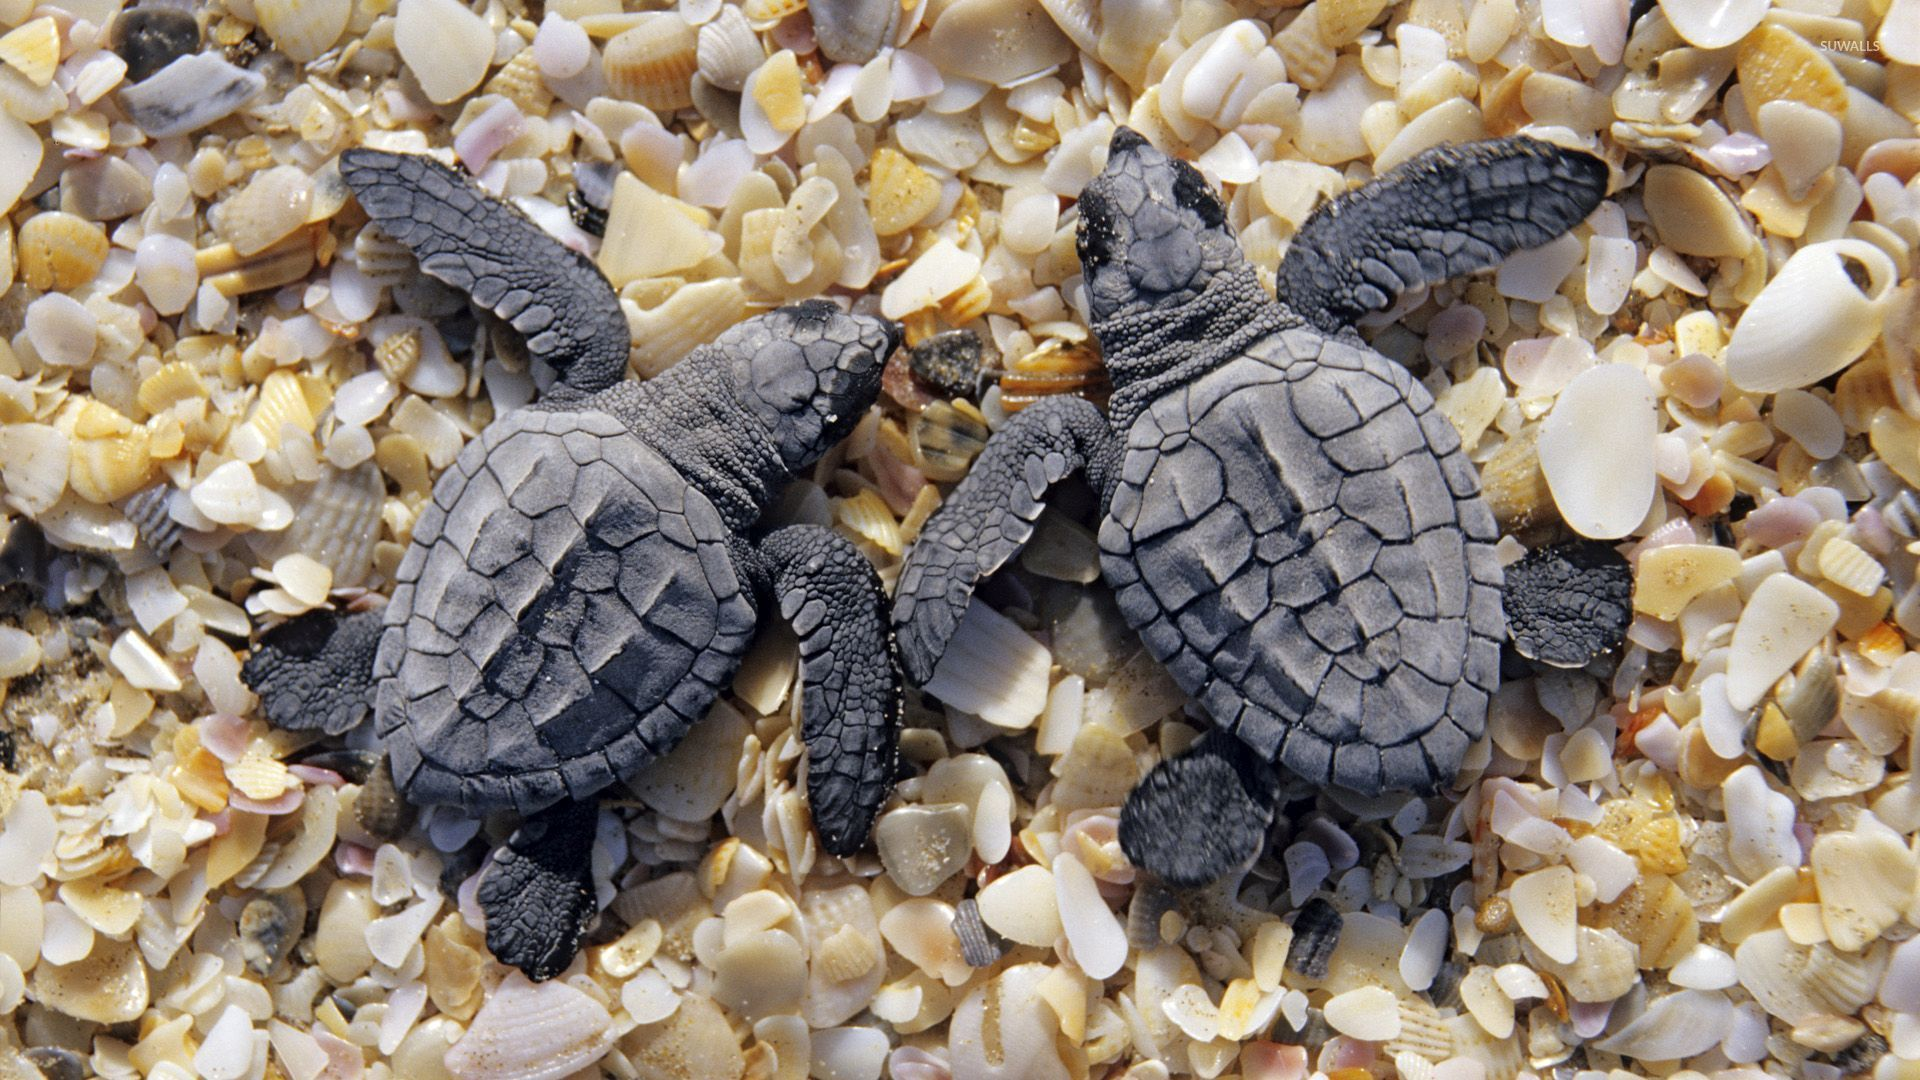 1920x1080 Sea turtles on shells and pebbles wallpaper - Animal wallpapers - #52174